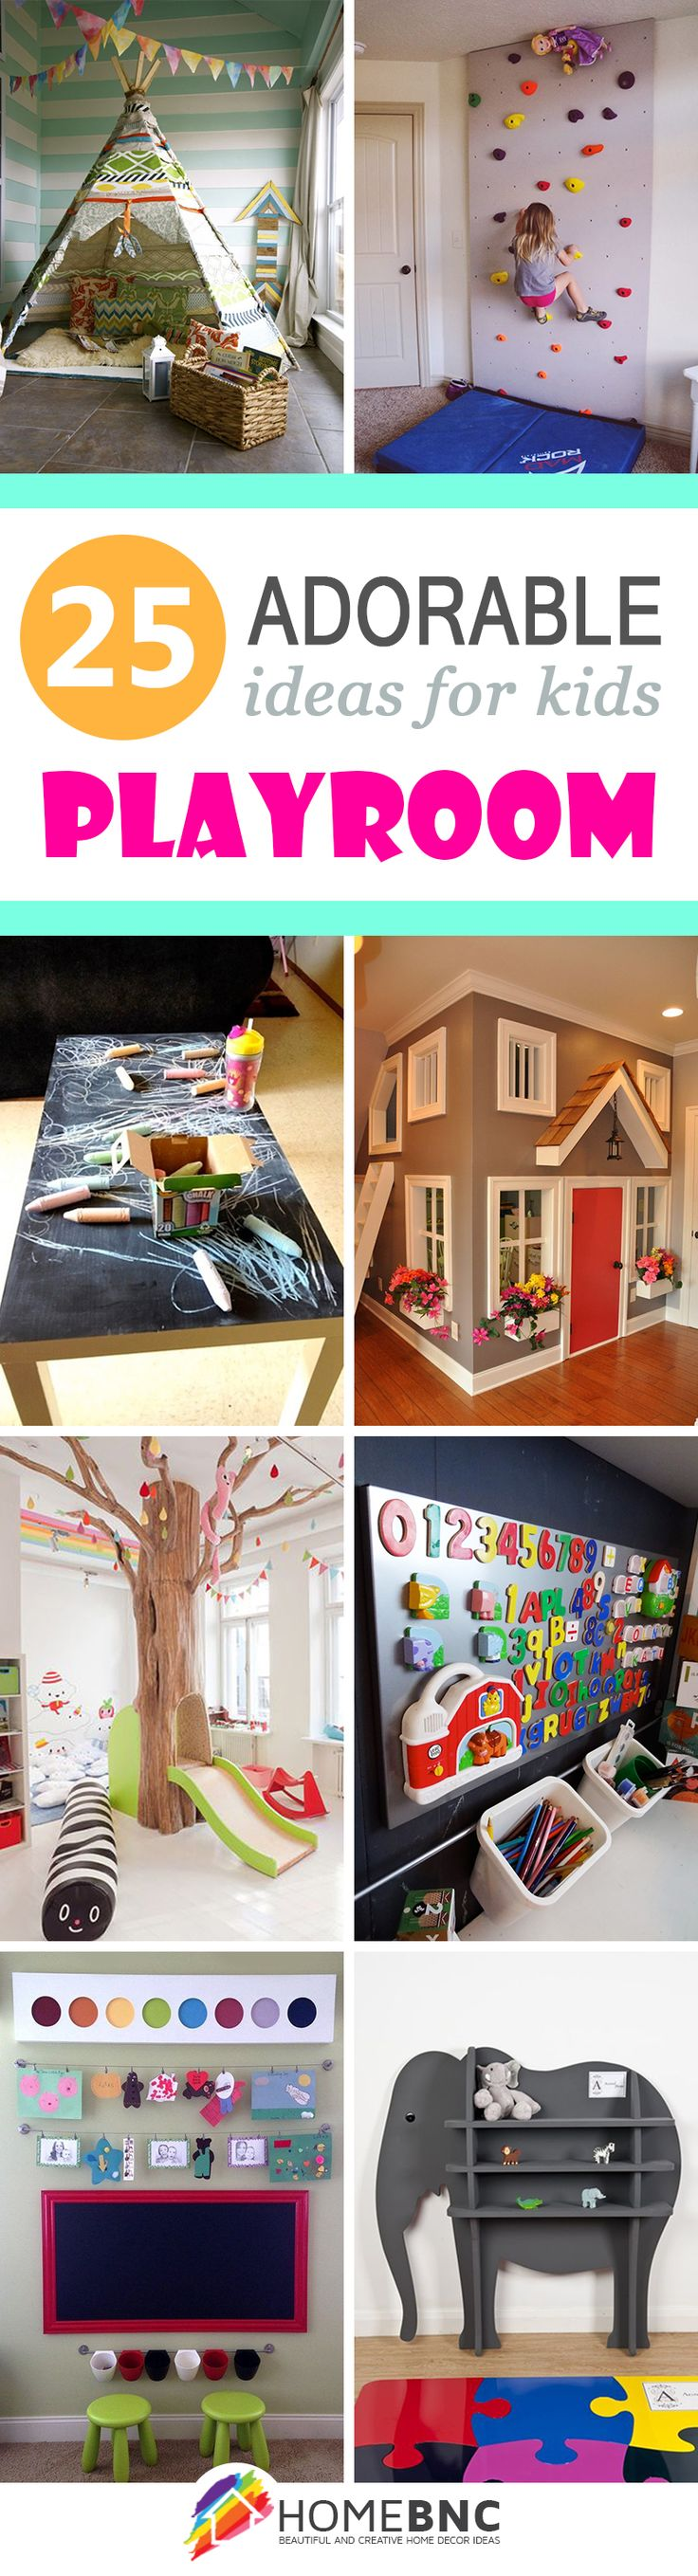 426 best Playroom & HangOut Rooms images on Pinterest